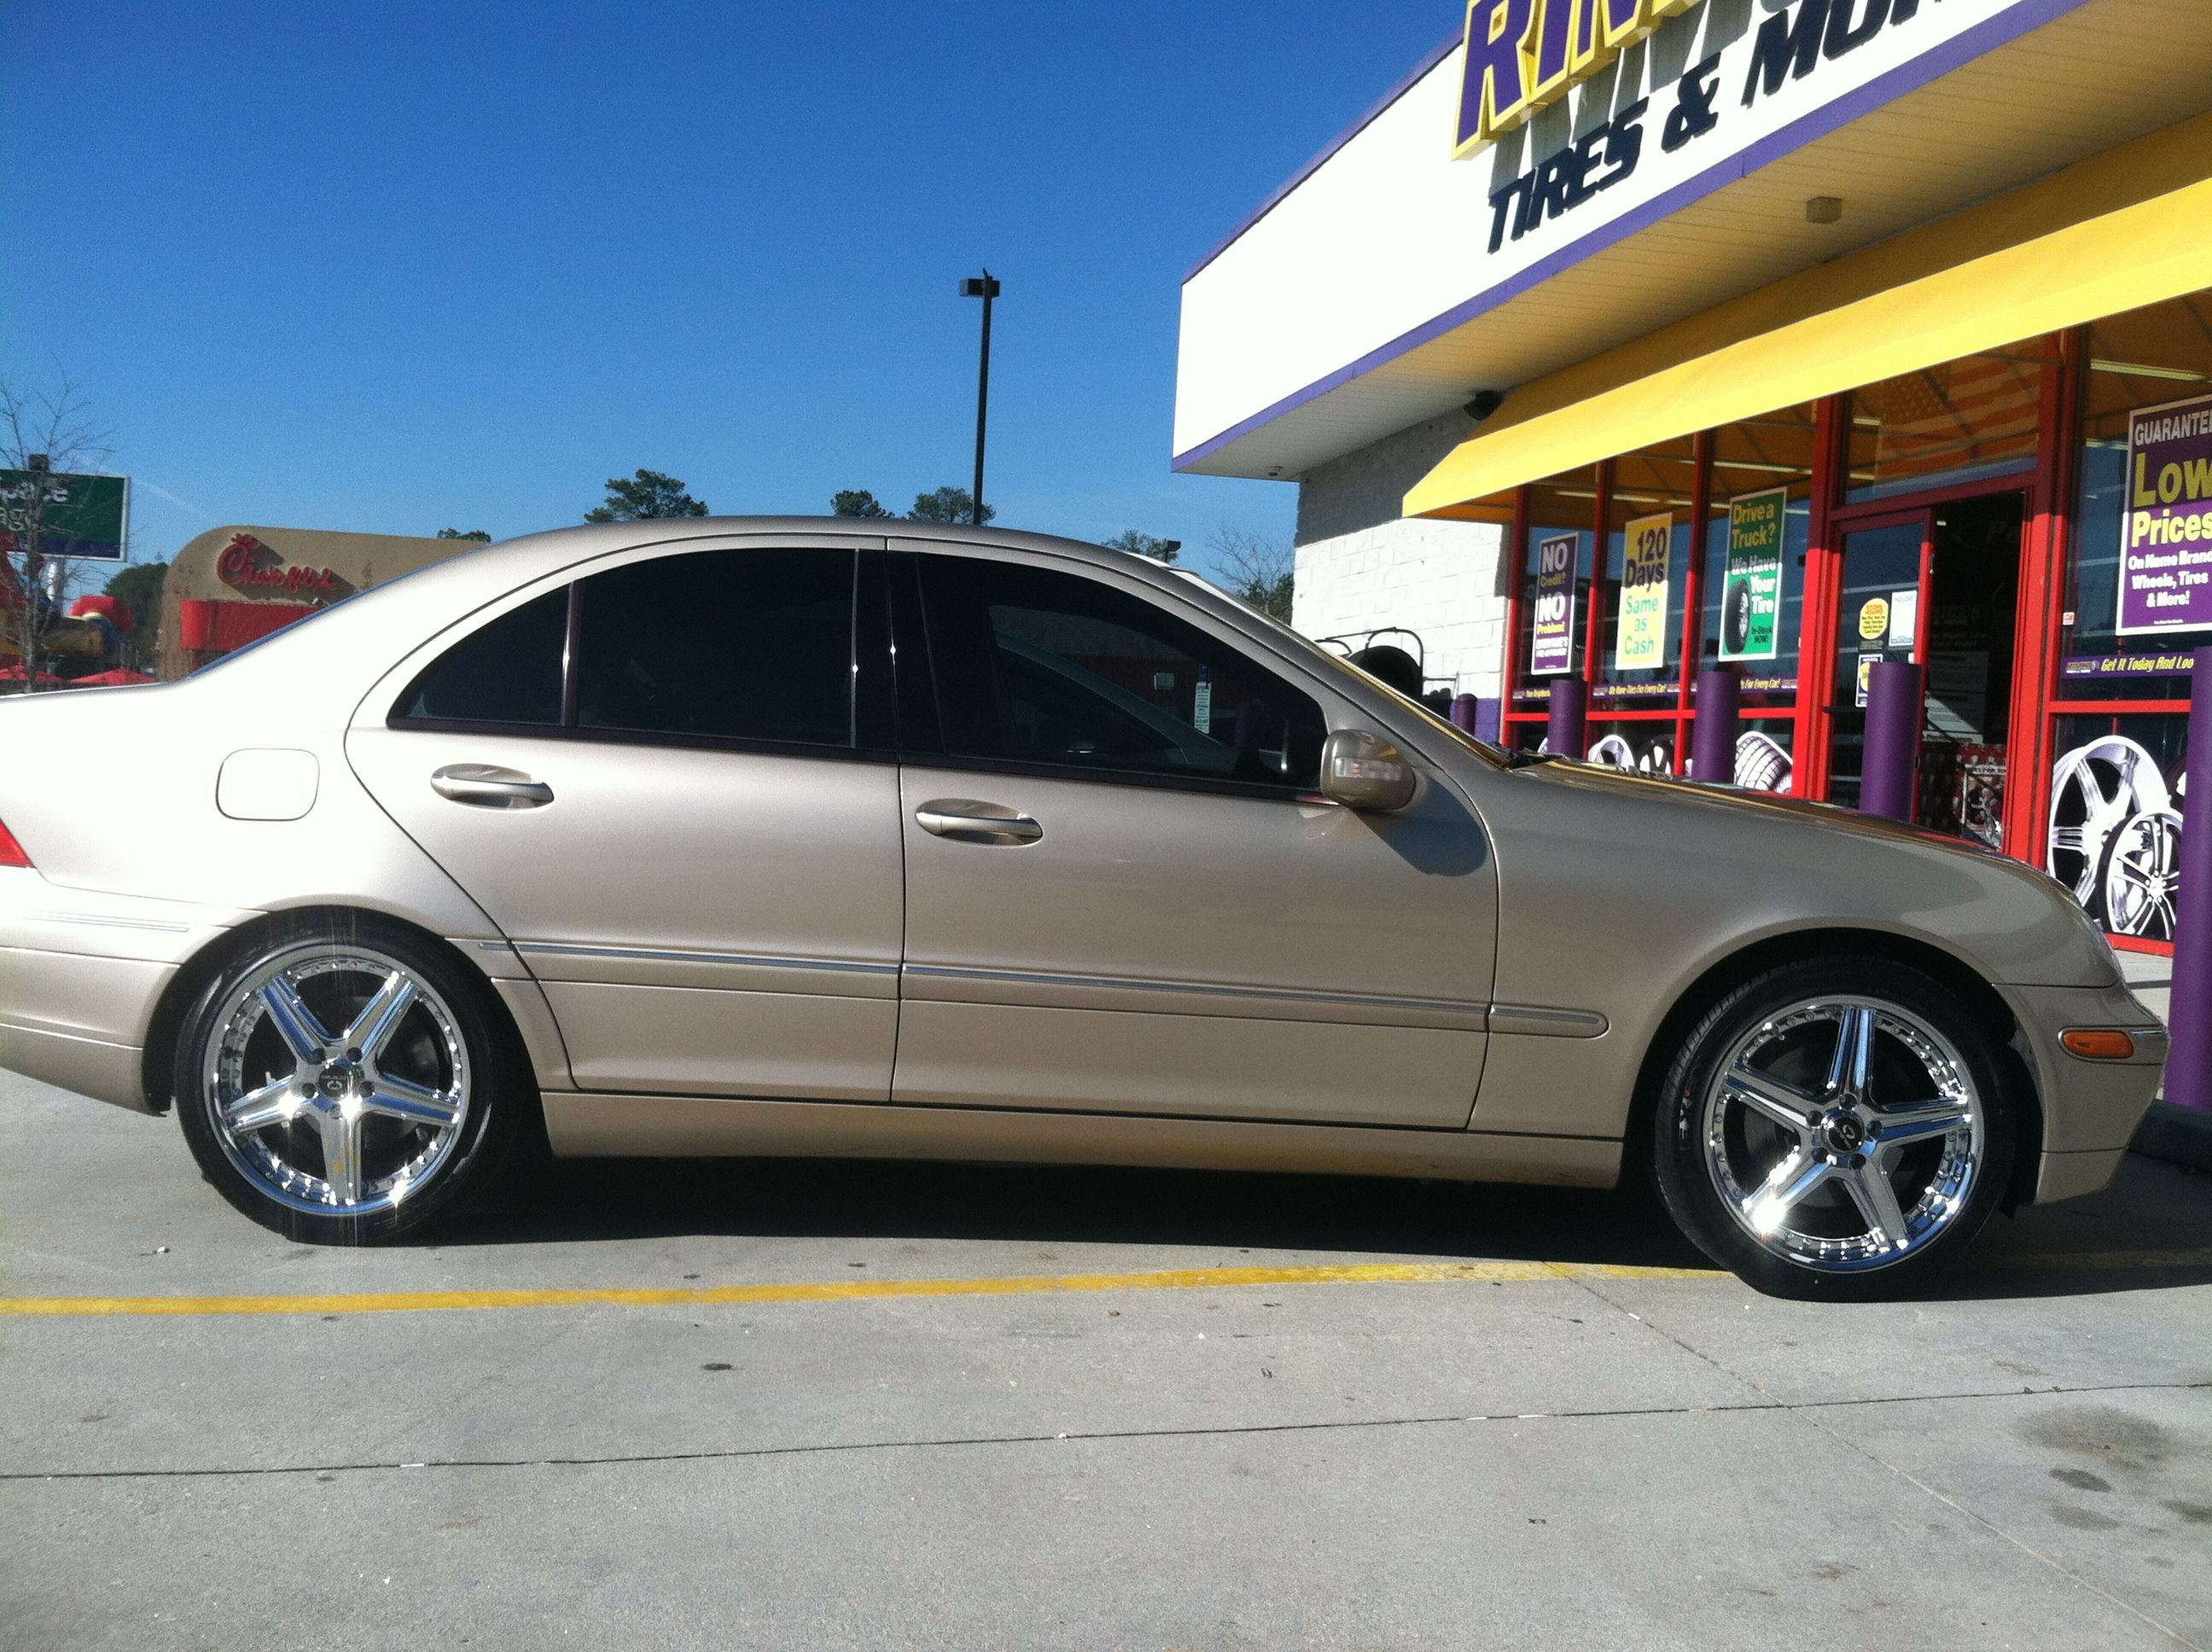 hight resolution of this is terrell hood s 2004 mercedes c240 sporting 18 lorenzo wl019 wheels photo taken at our stone mountain rimco store at 5540 memorial drive stone